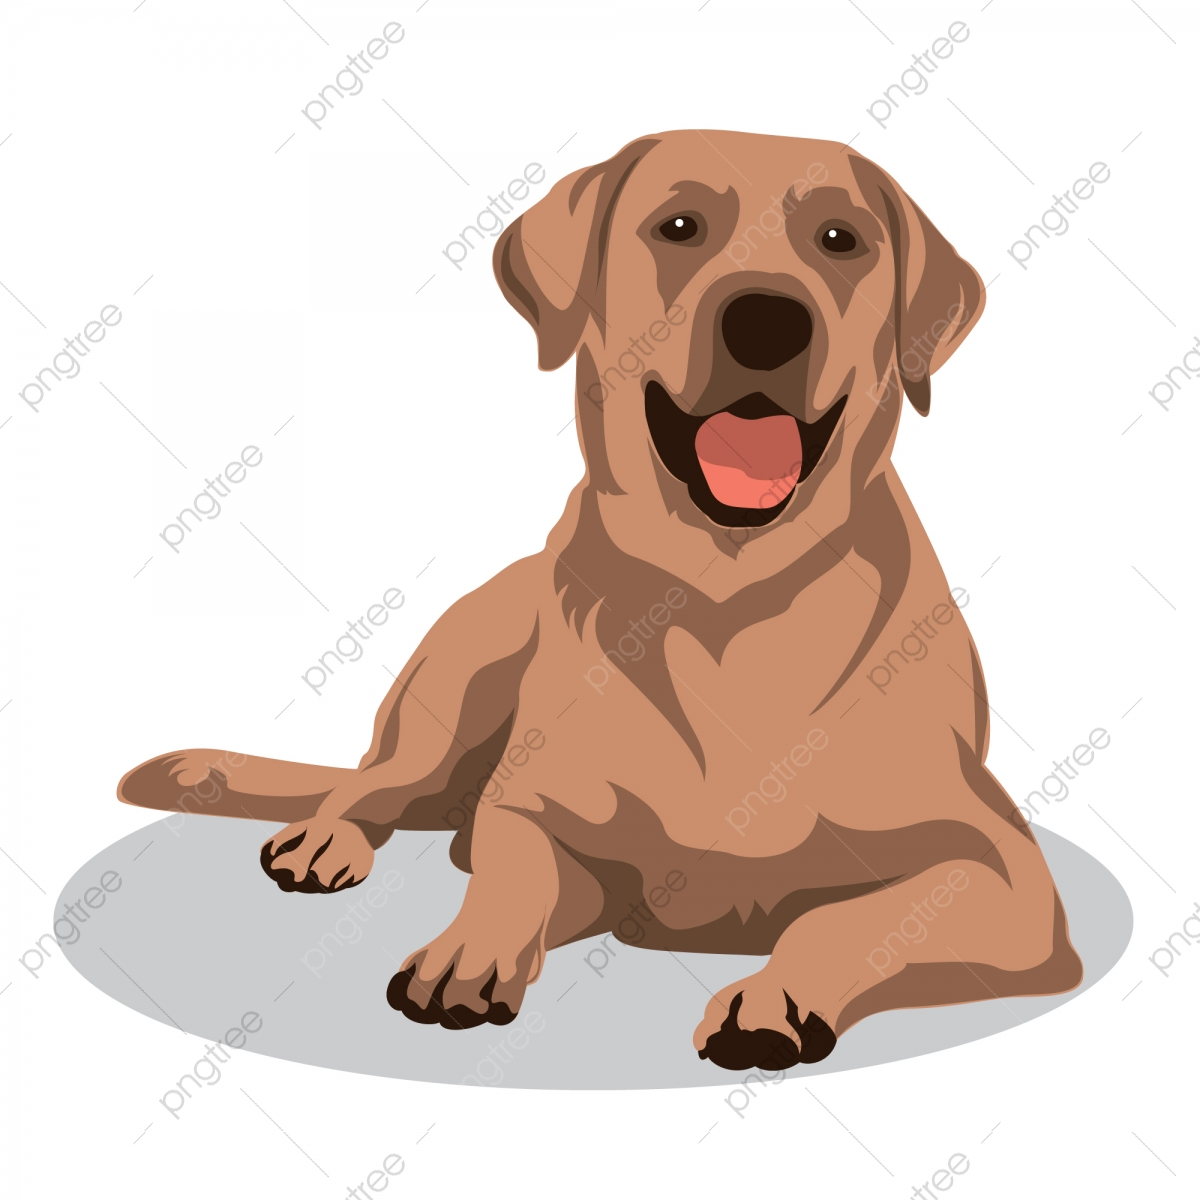 Dog Vector Png Vector Psd And Clipart With Transparent Background For Free Download Pngtree